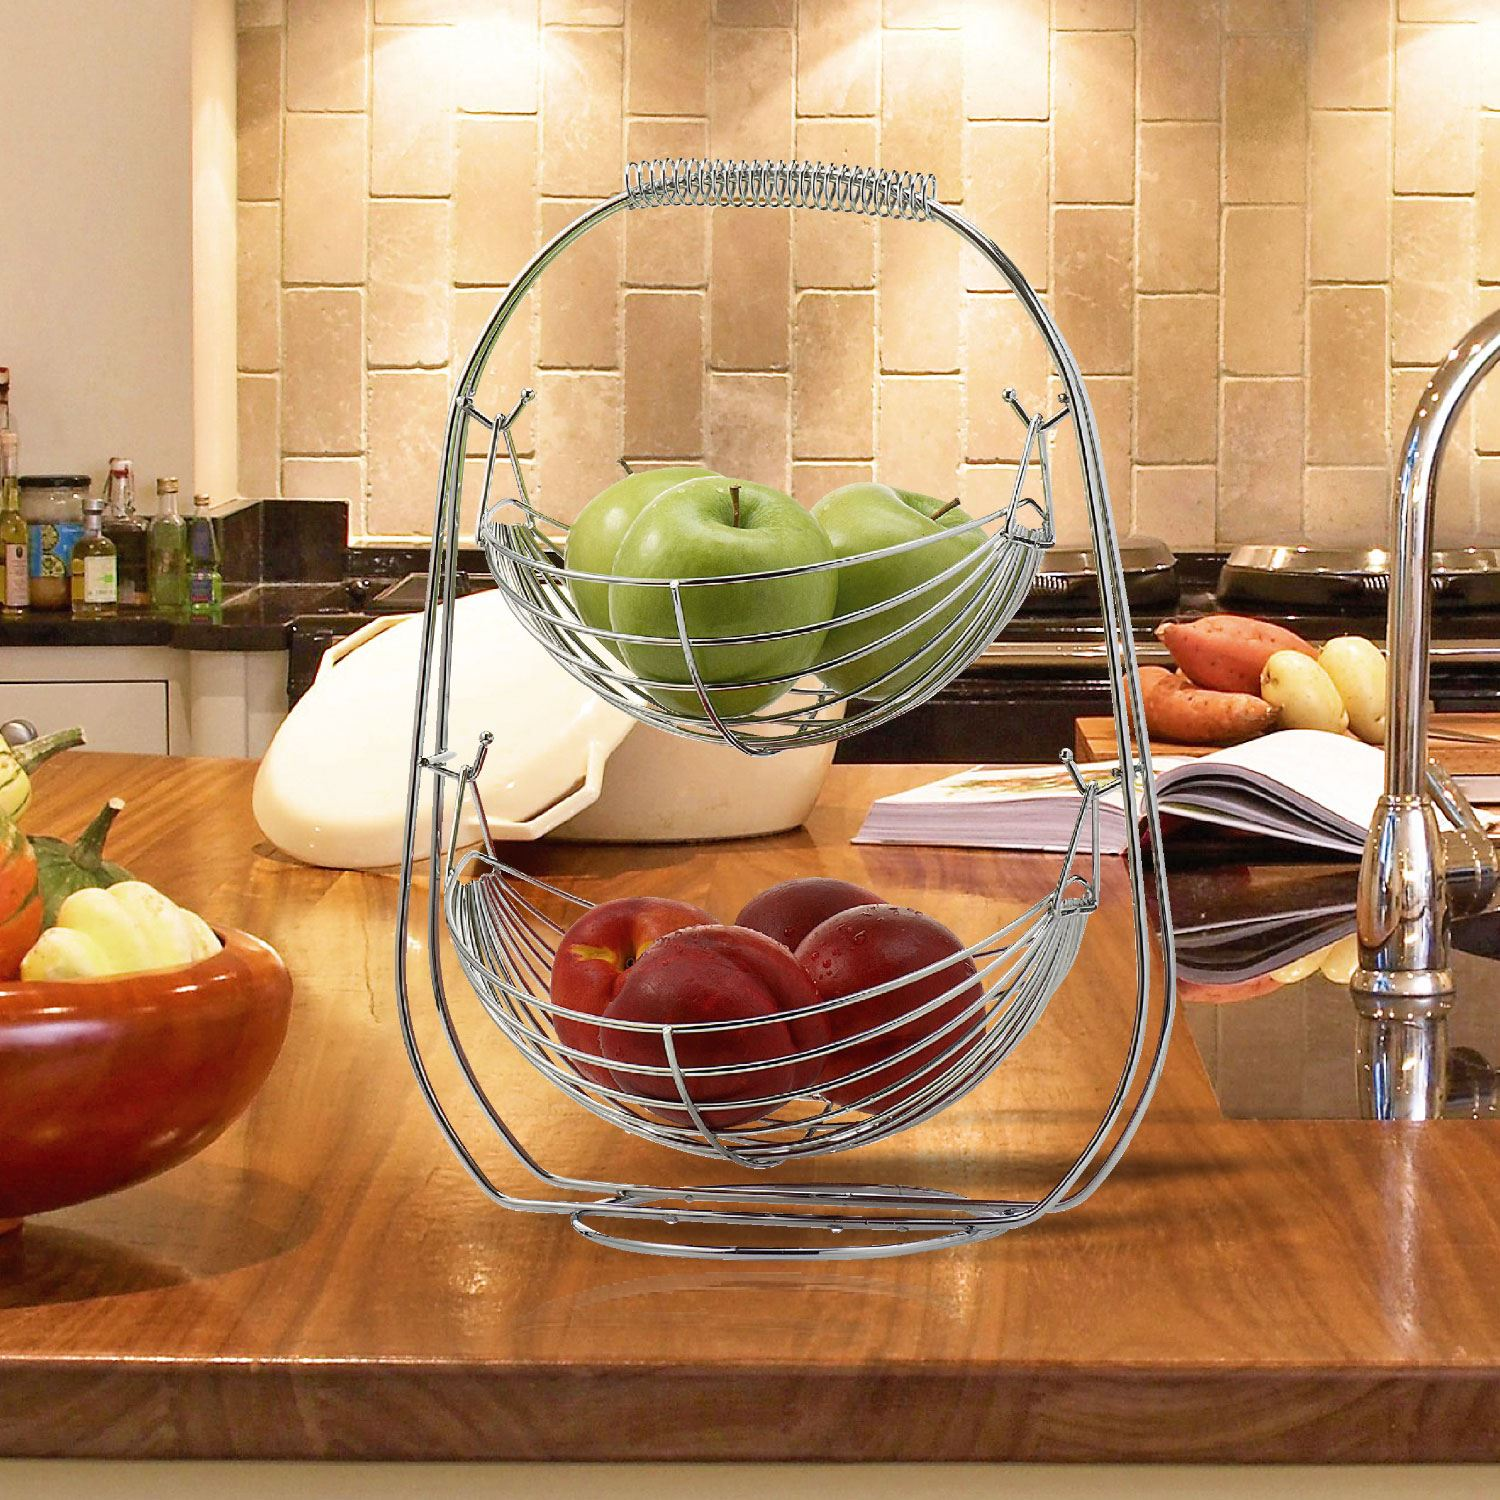 Table Top Fruit Basket Chrome 2 3 Tier Wire Fruit Vegetable Basket Hammock Bowl